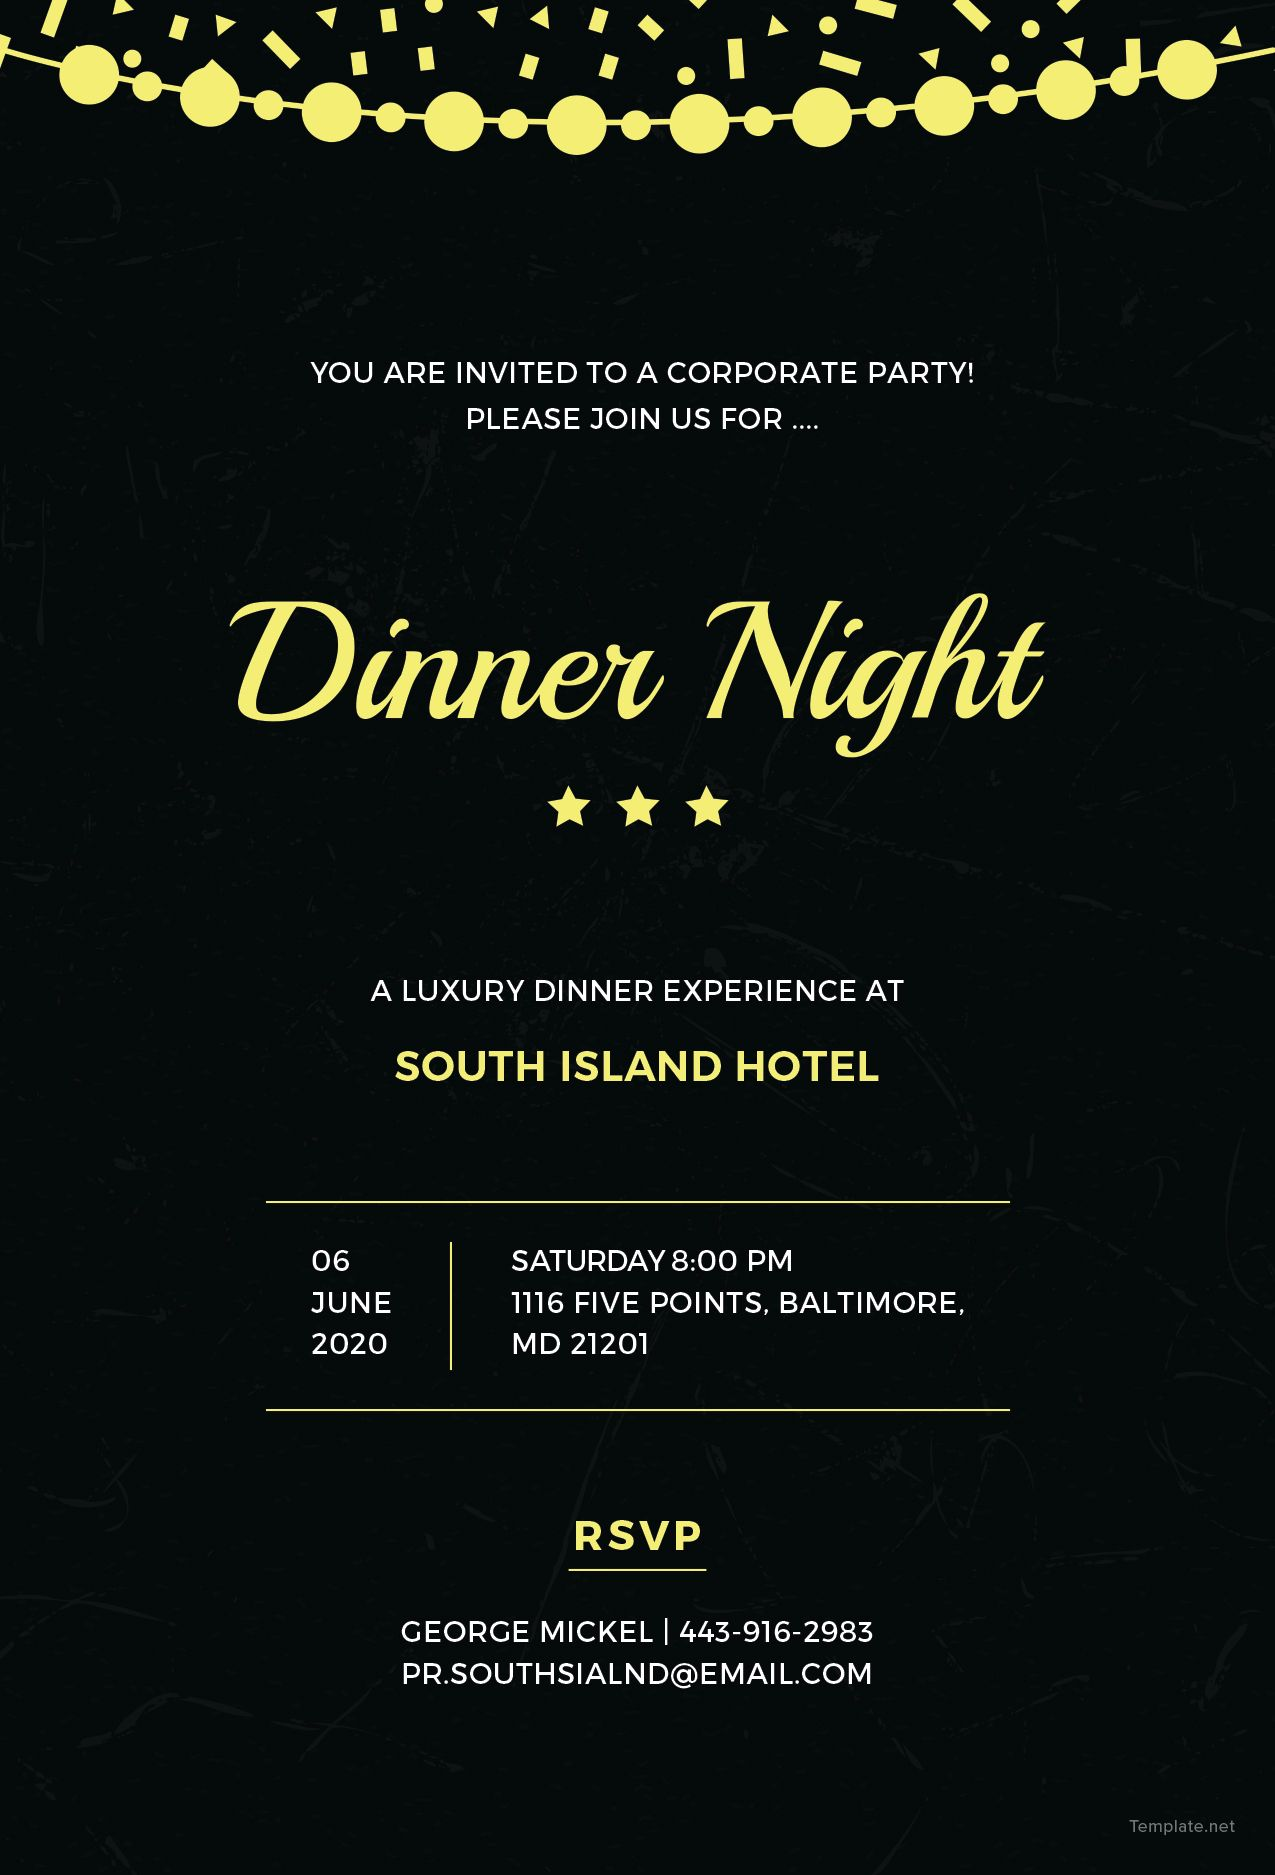 FREE Company Dinner Night Invitation Template - Word (DOC)  PSD